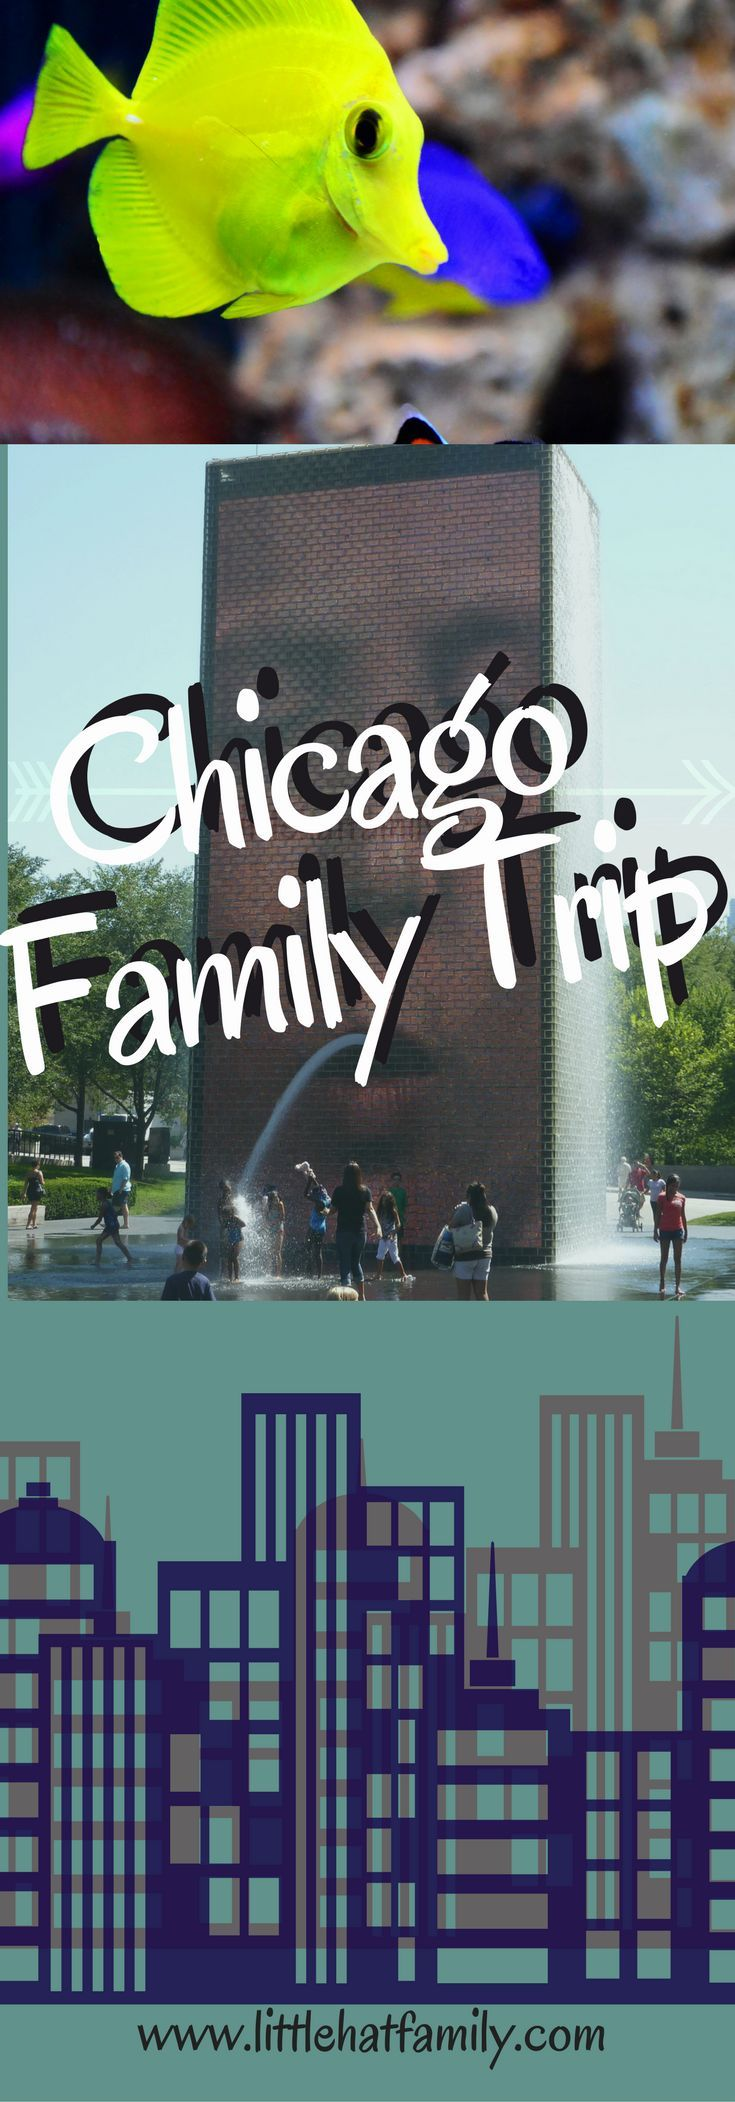 to do in Chicago with the kids, have an adventure in Chicago, traveling with toddlers, Chicago kids attractions, things to do for kids in Chicago